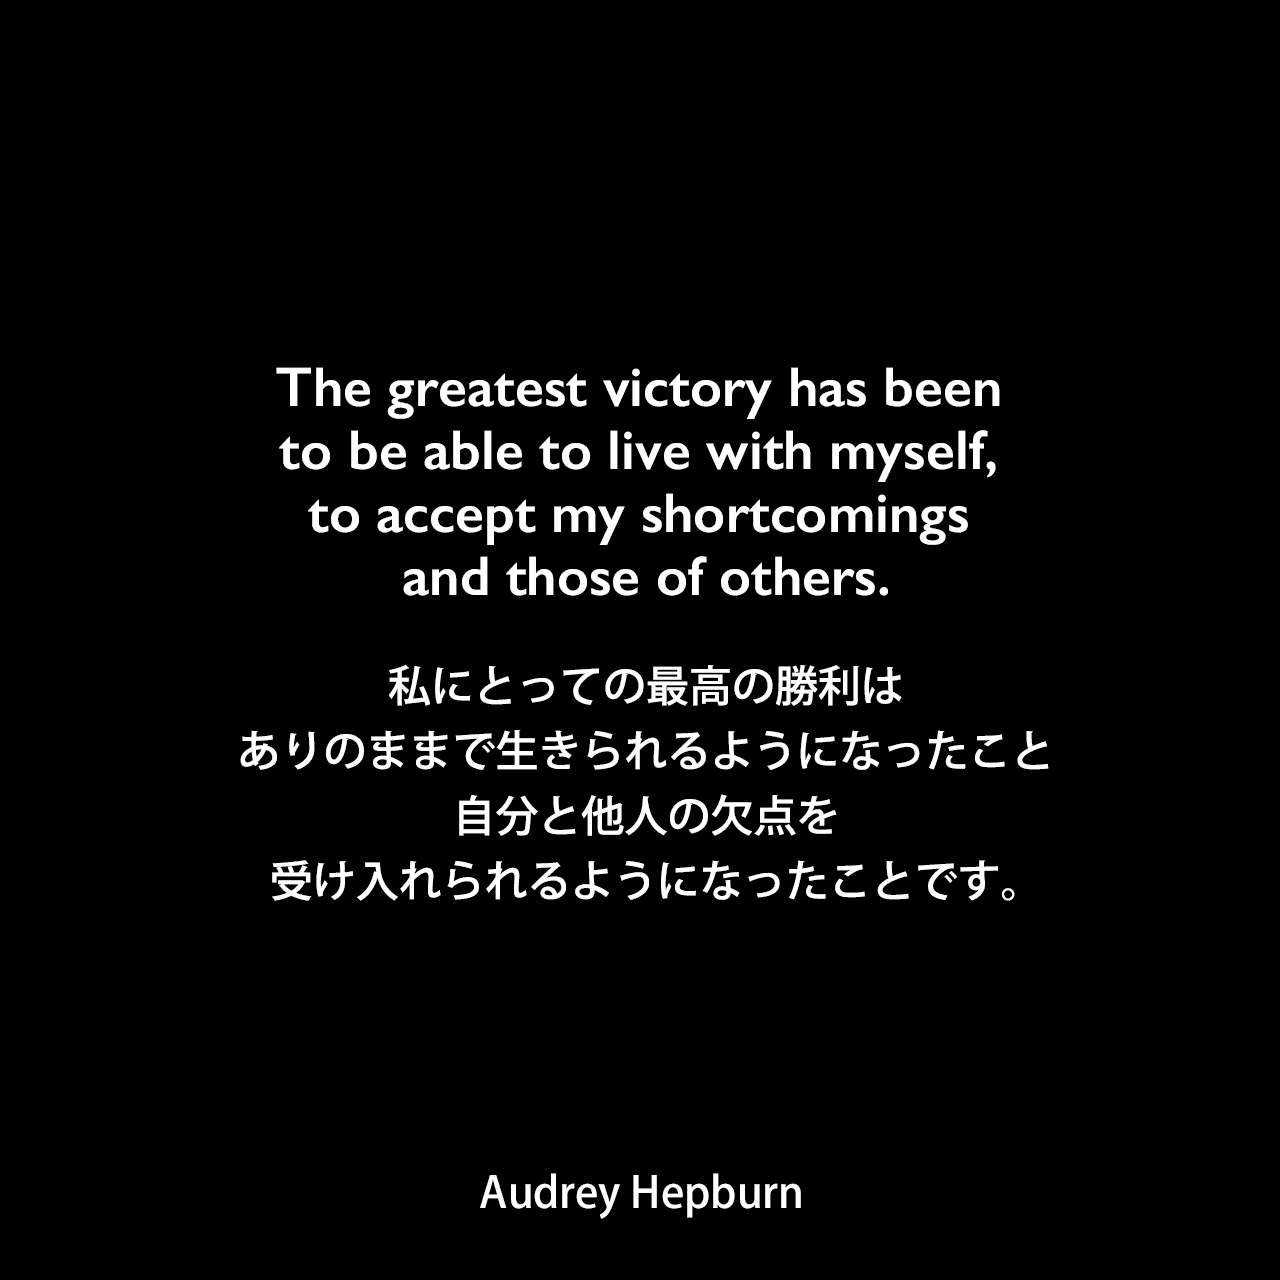 The greatest victory has been to be able to live with myself, to accept my shortcomings and those of others.私にとっての最高の勝利は、ありのままで生きられるようになったこと、自分と他人の欠点を受け入れられるようになったことです。